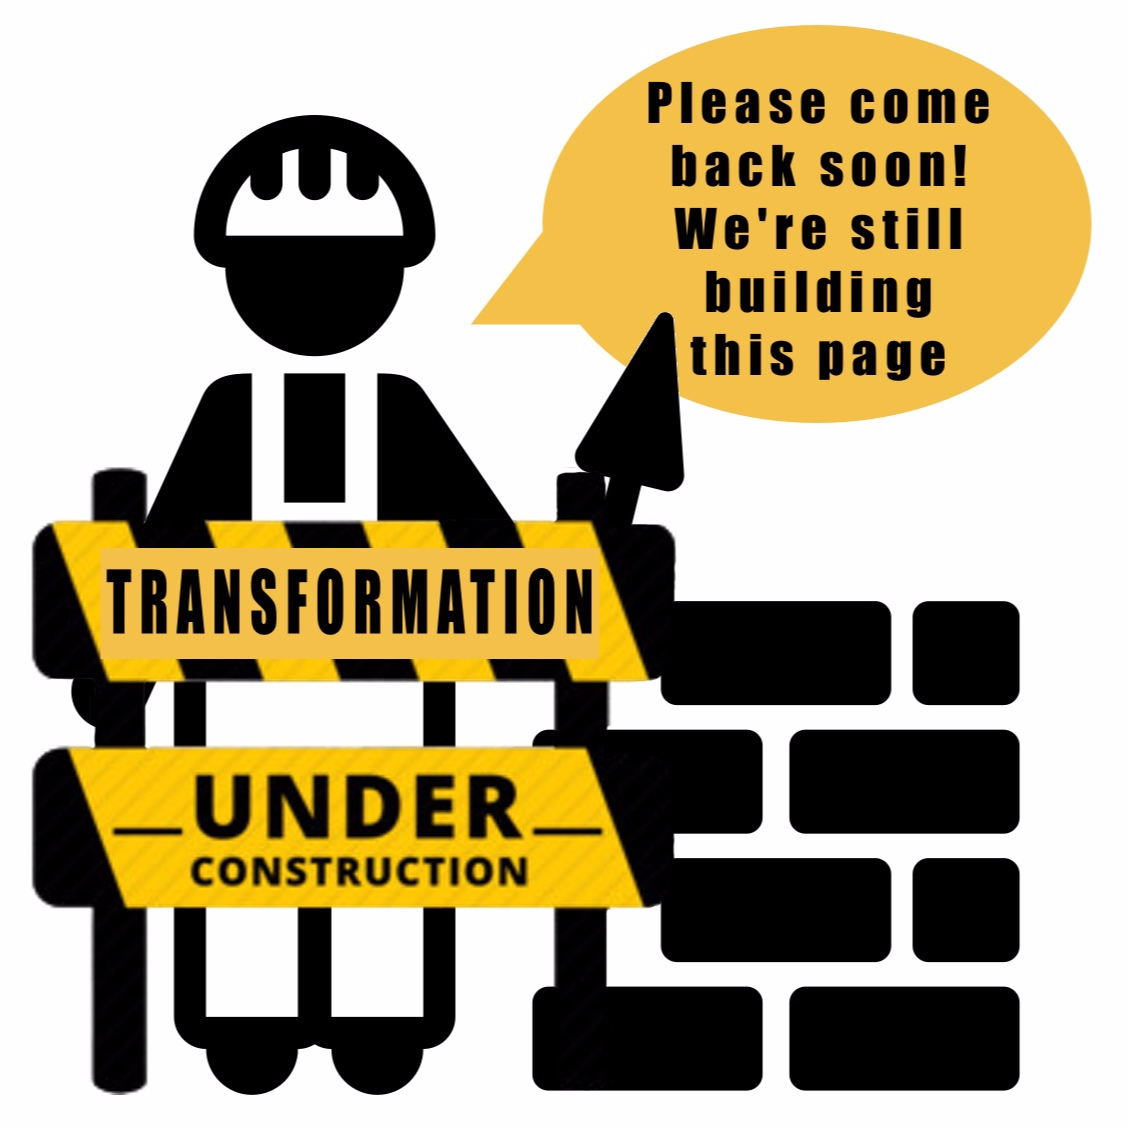 page-construction.jpg